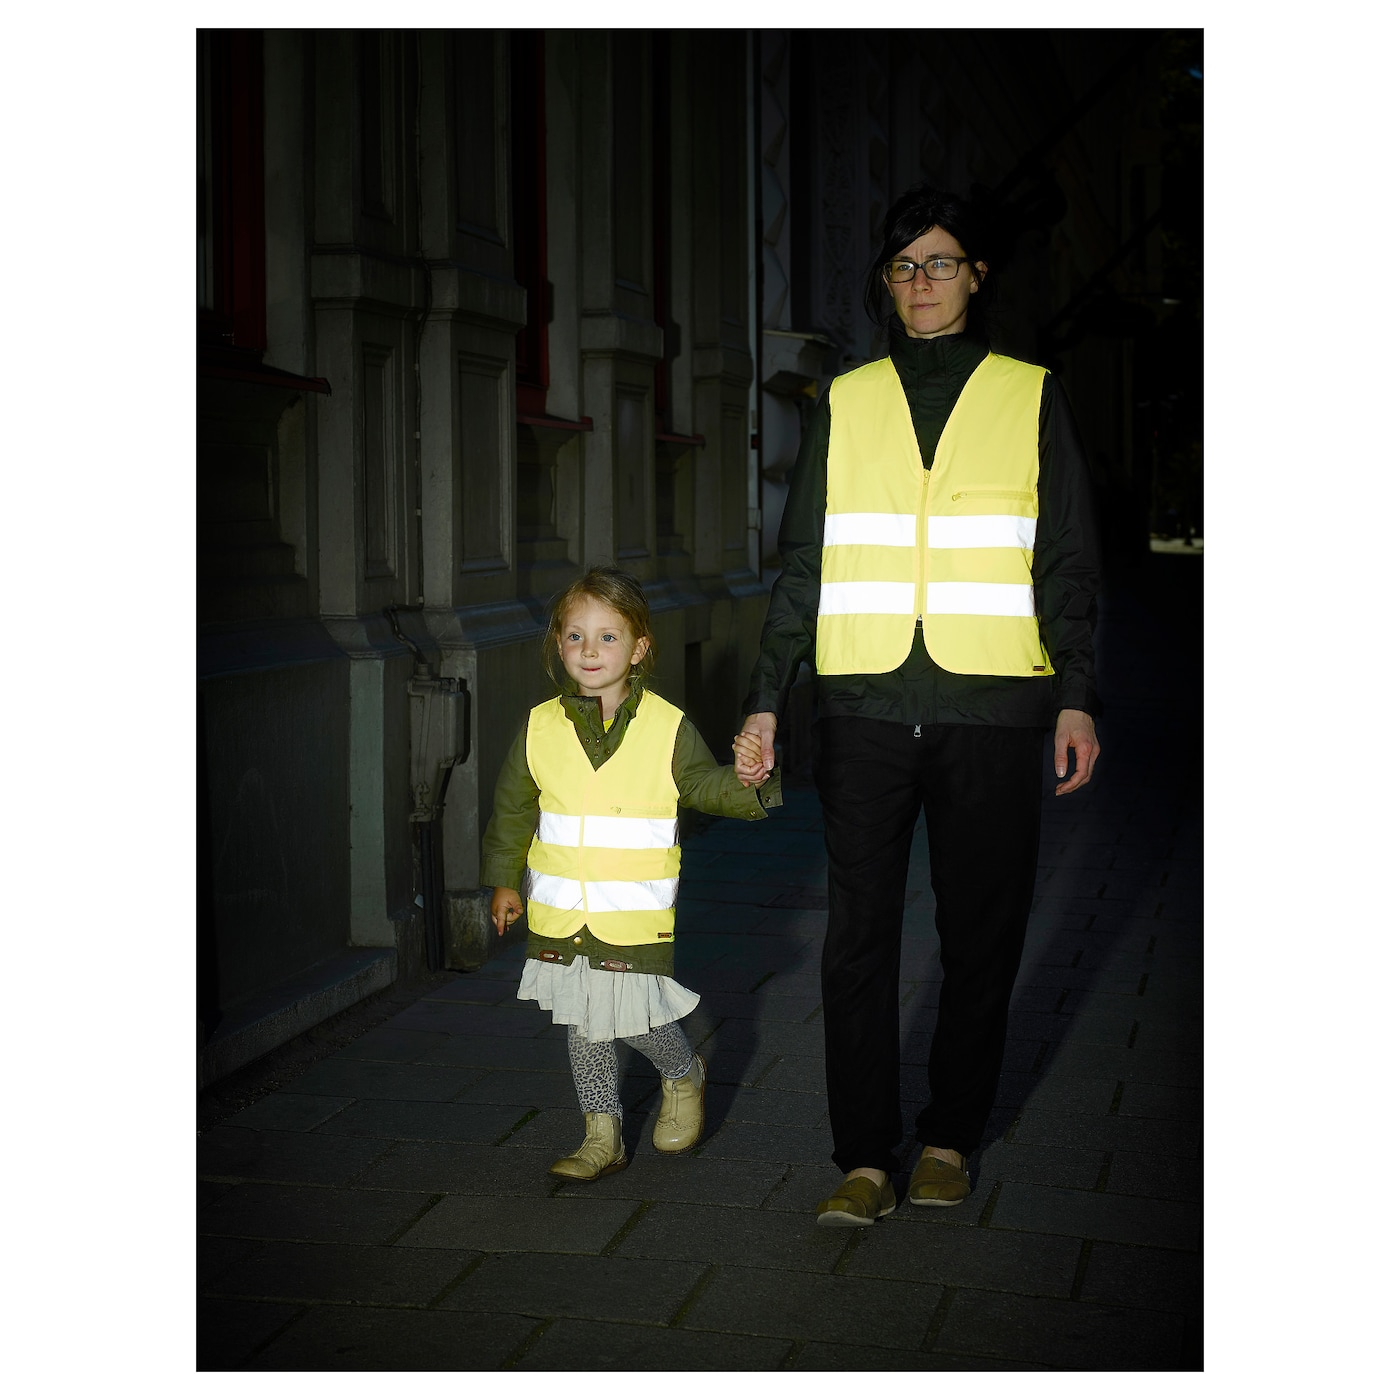 IKEA BESKYDDA reflective vest Folds small enough to fit in your child's coat pocket or school bag.